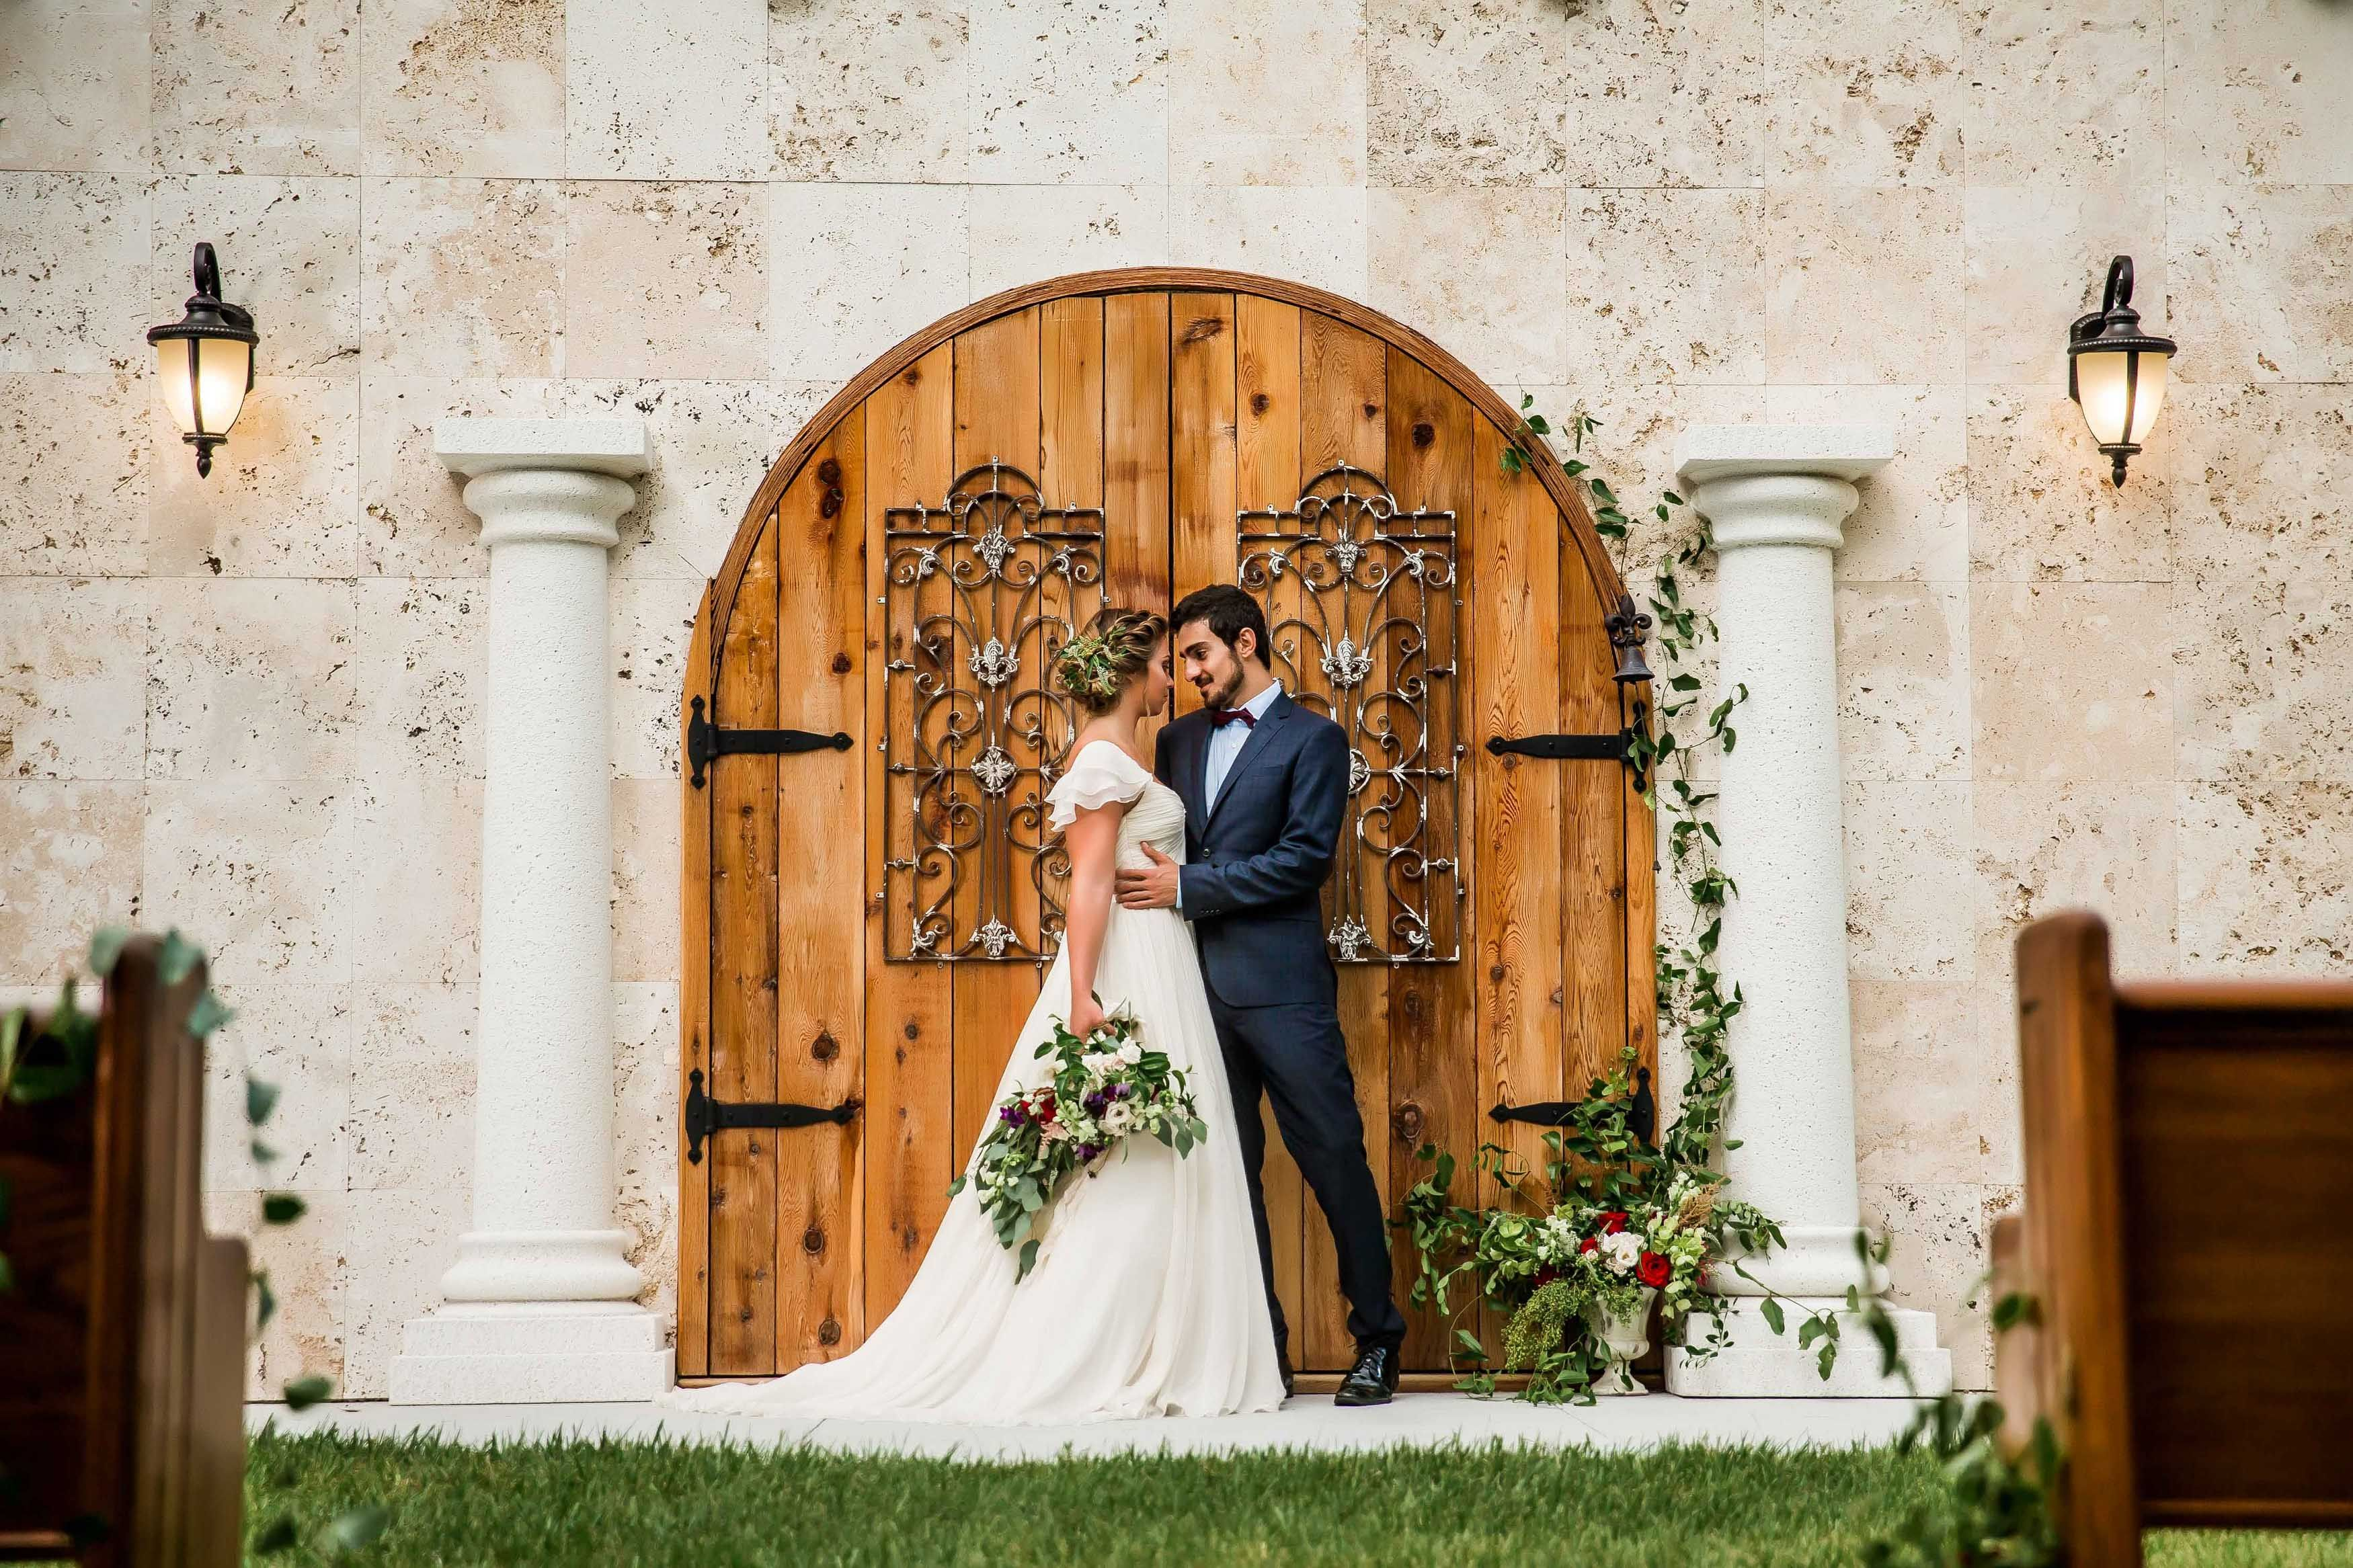 All Inclusive weddings at Bakers Ranch, www.bakersranch